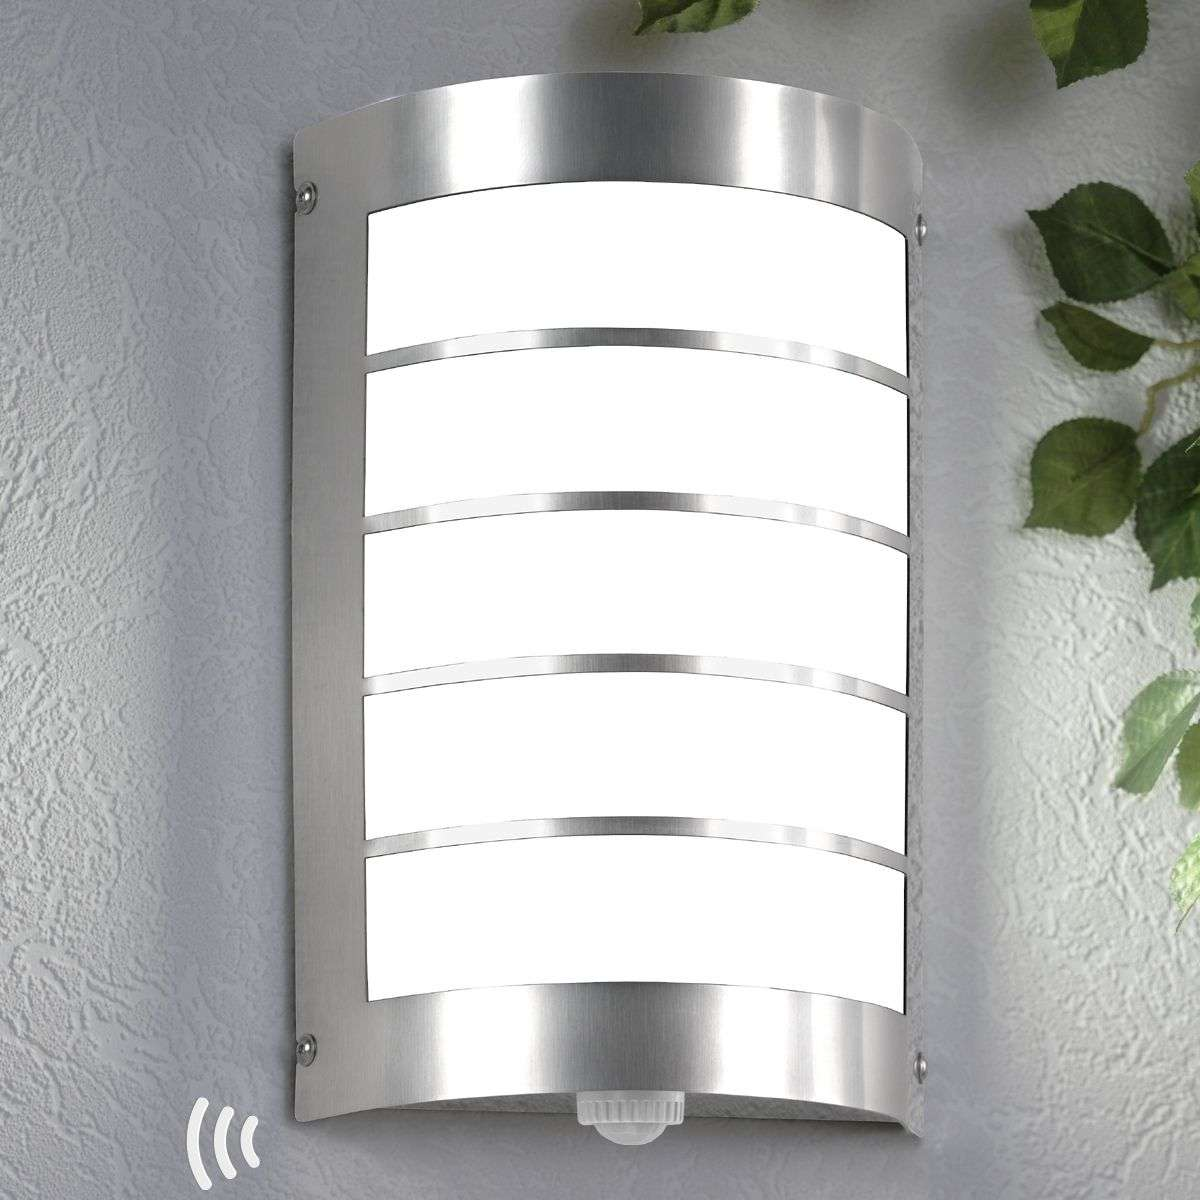 Marco1 Modern Exterior Wall Lamp Lightscouk